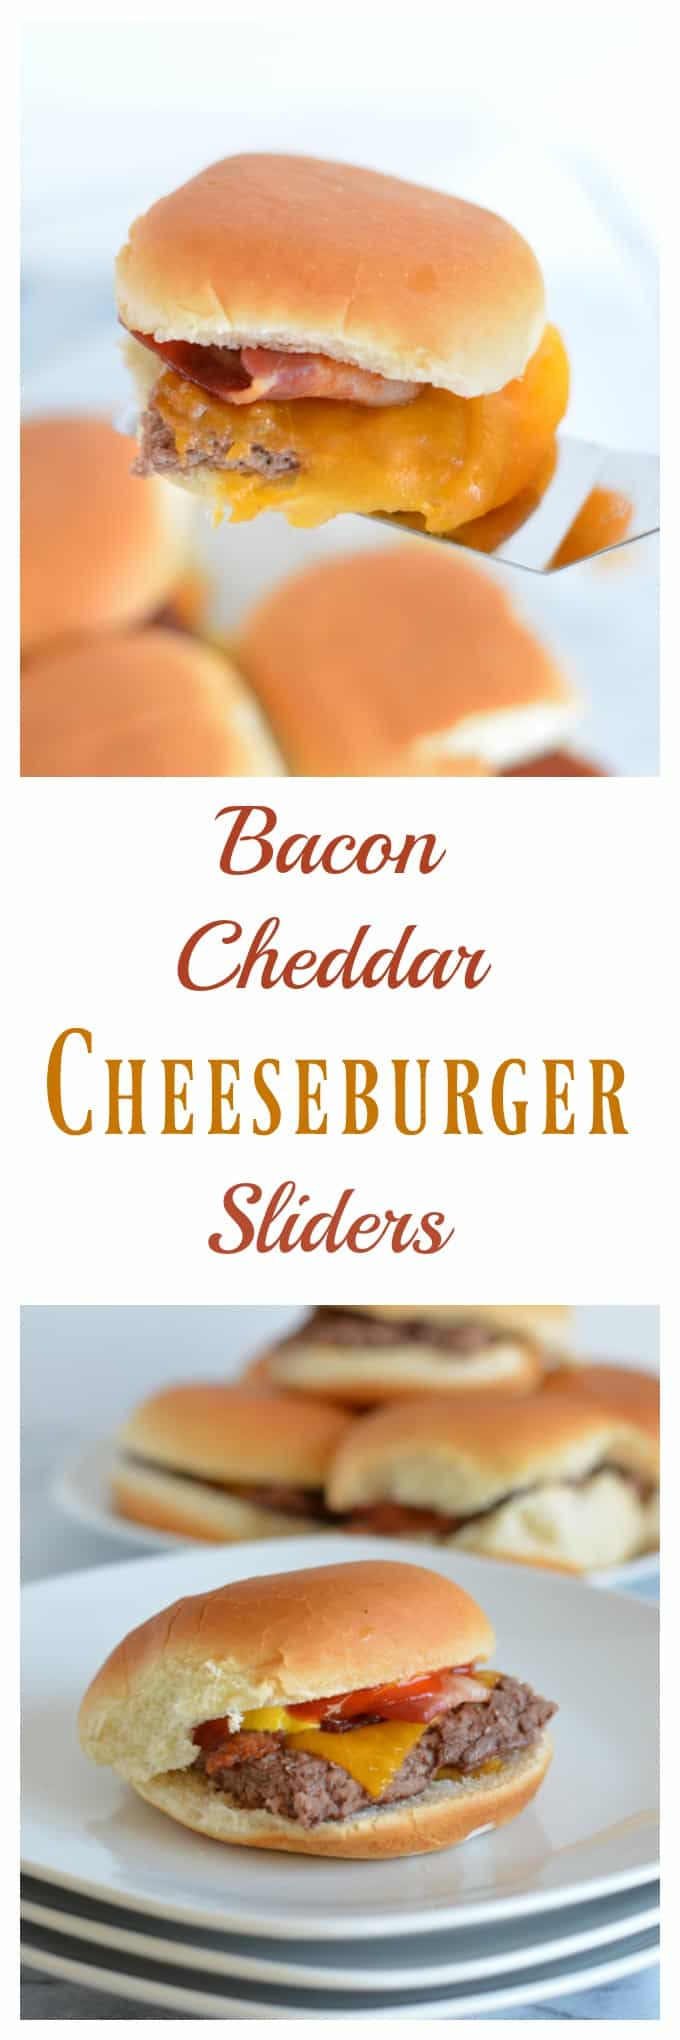 Bacon Cheddar Cheeseburger Sliders are the perfect game day snack. Baked in the oven there is no need to turn on your grill. Pepperidge farm sliders make game day easy. #sponsored #easyrecipes #gamedayrecipes #respectthebun #snacks #sliders #burgers